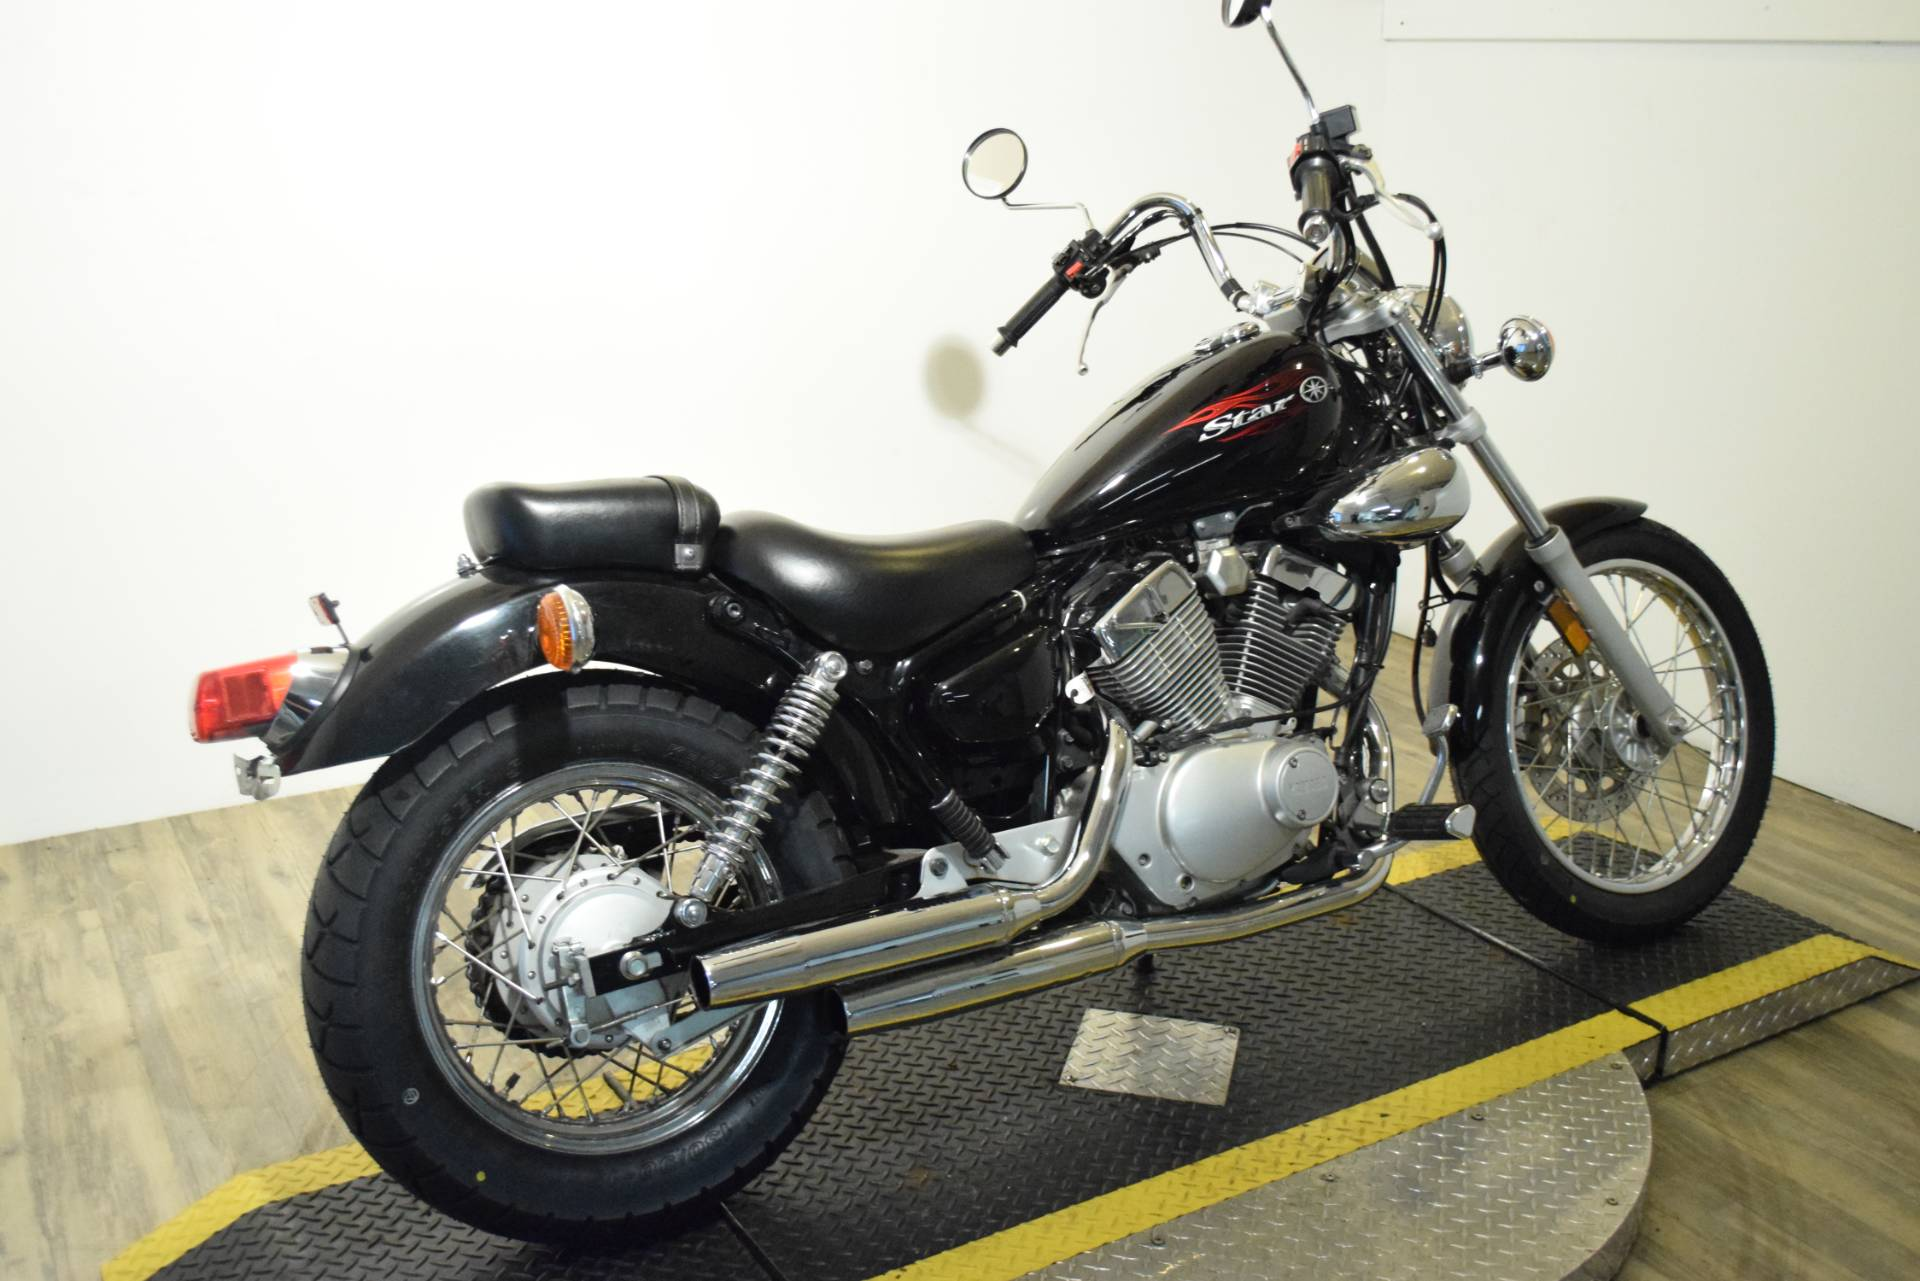 2010 Yamaha V Star 250 in Wauconda, Illinois